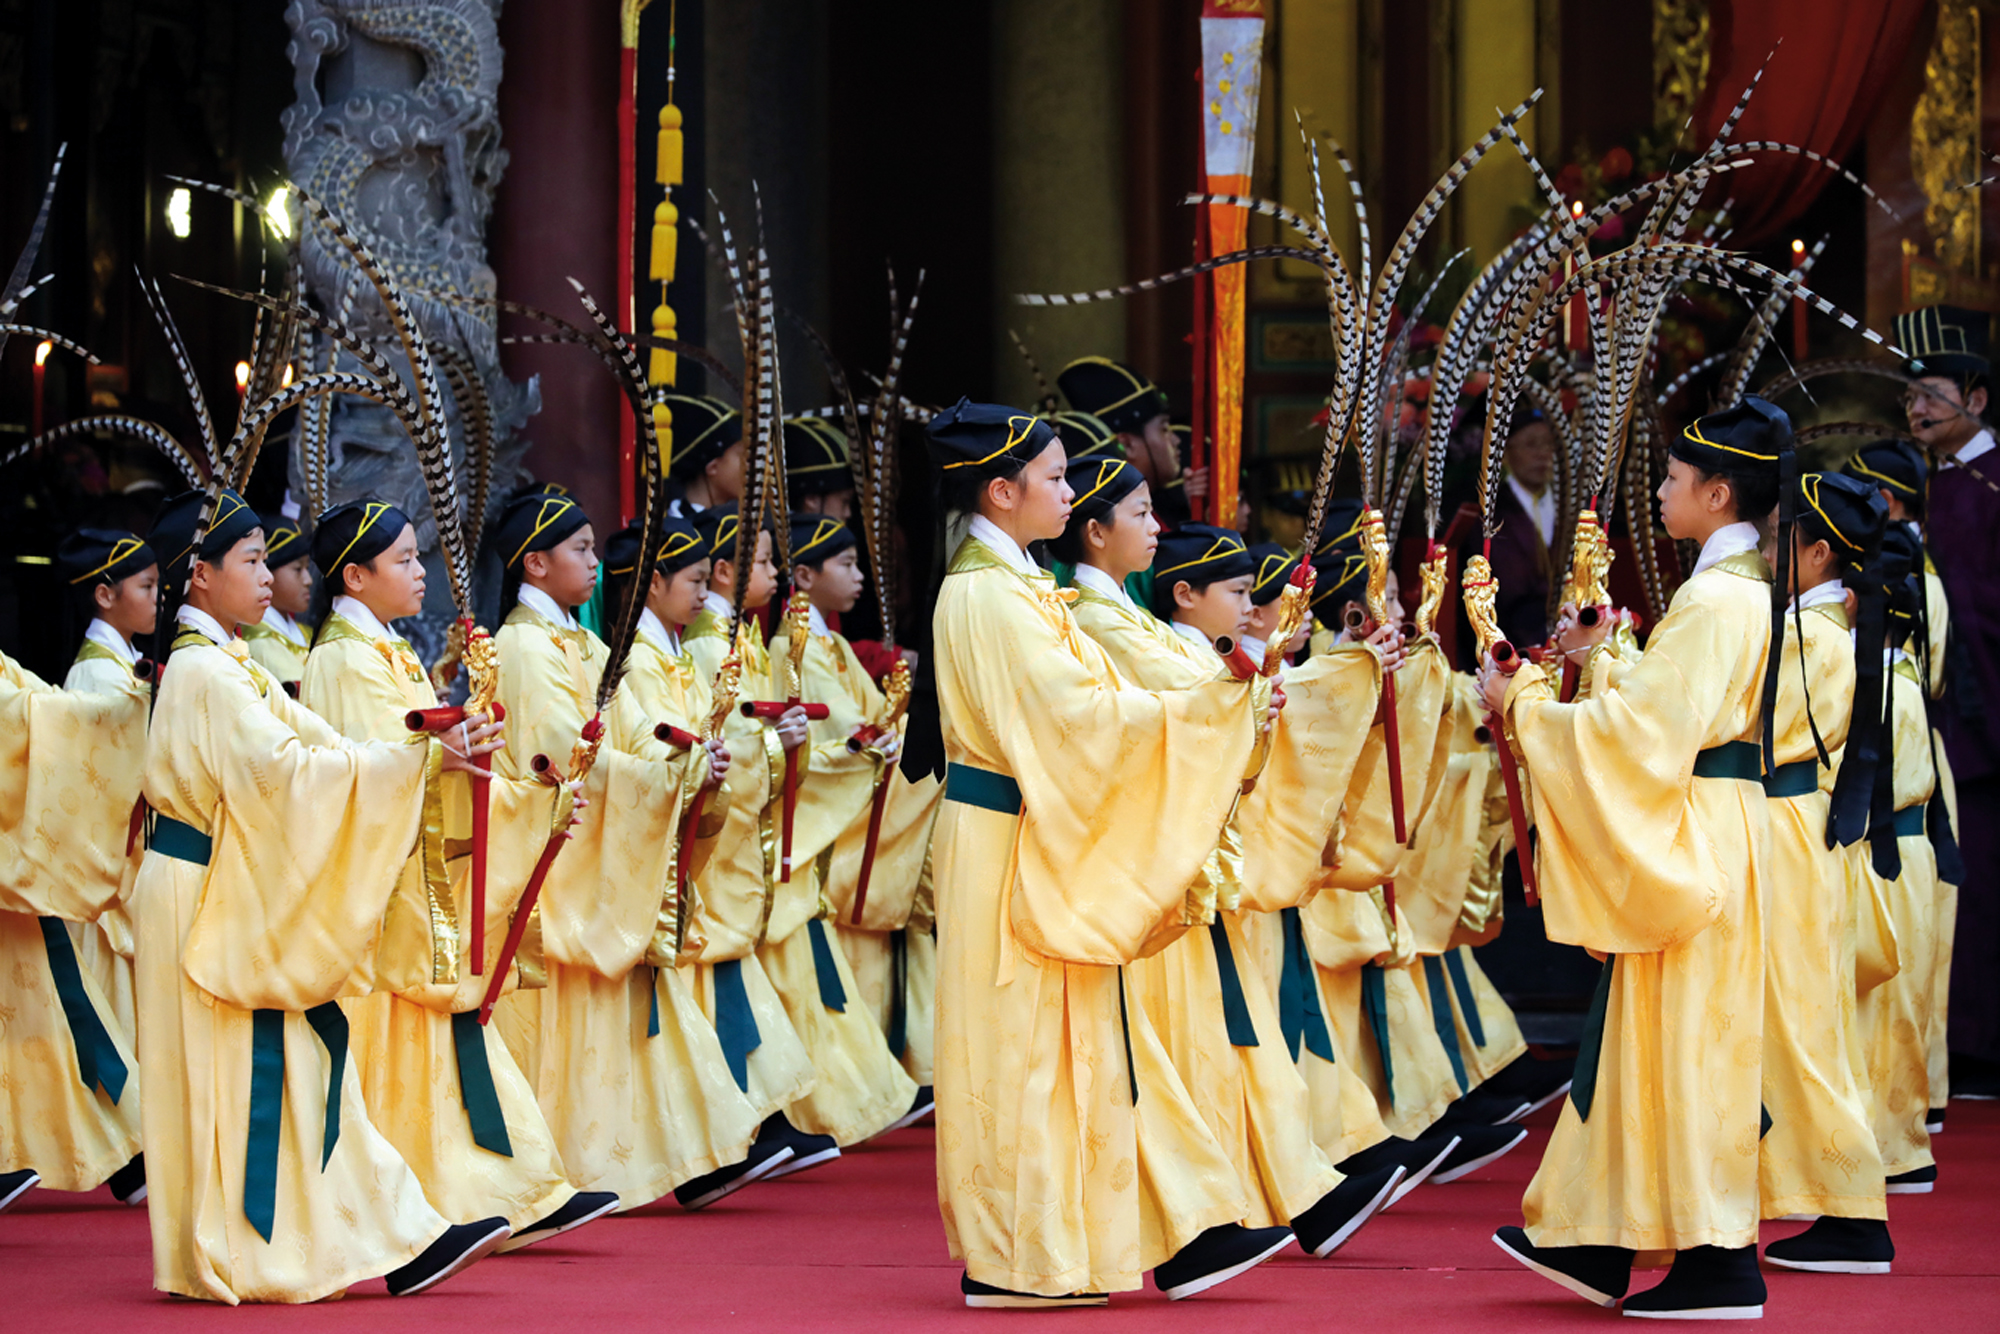 Since 1931, the dancers at the ceremony have been students at Dalong Elementary School. They have passed down this tradition for 87 years.